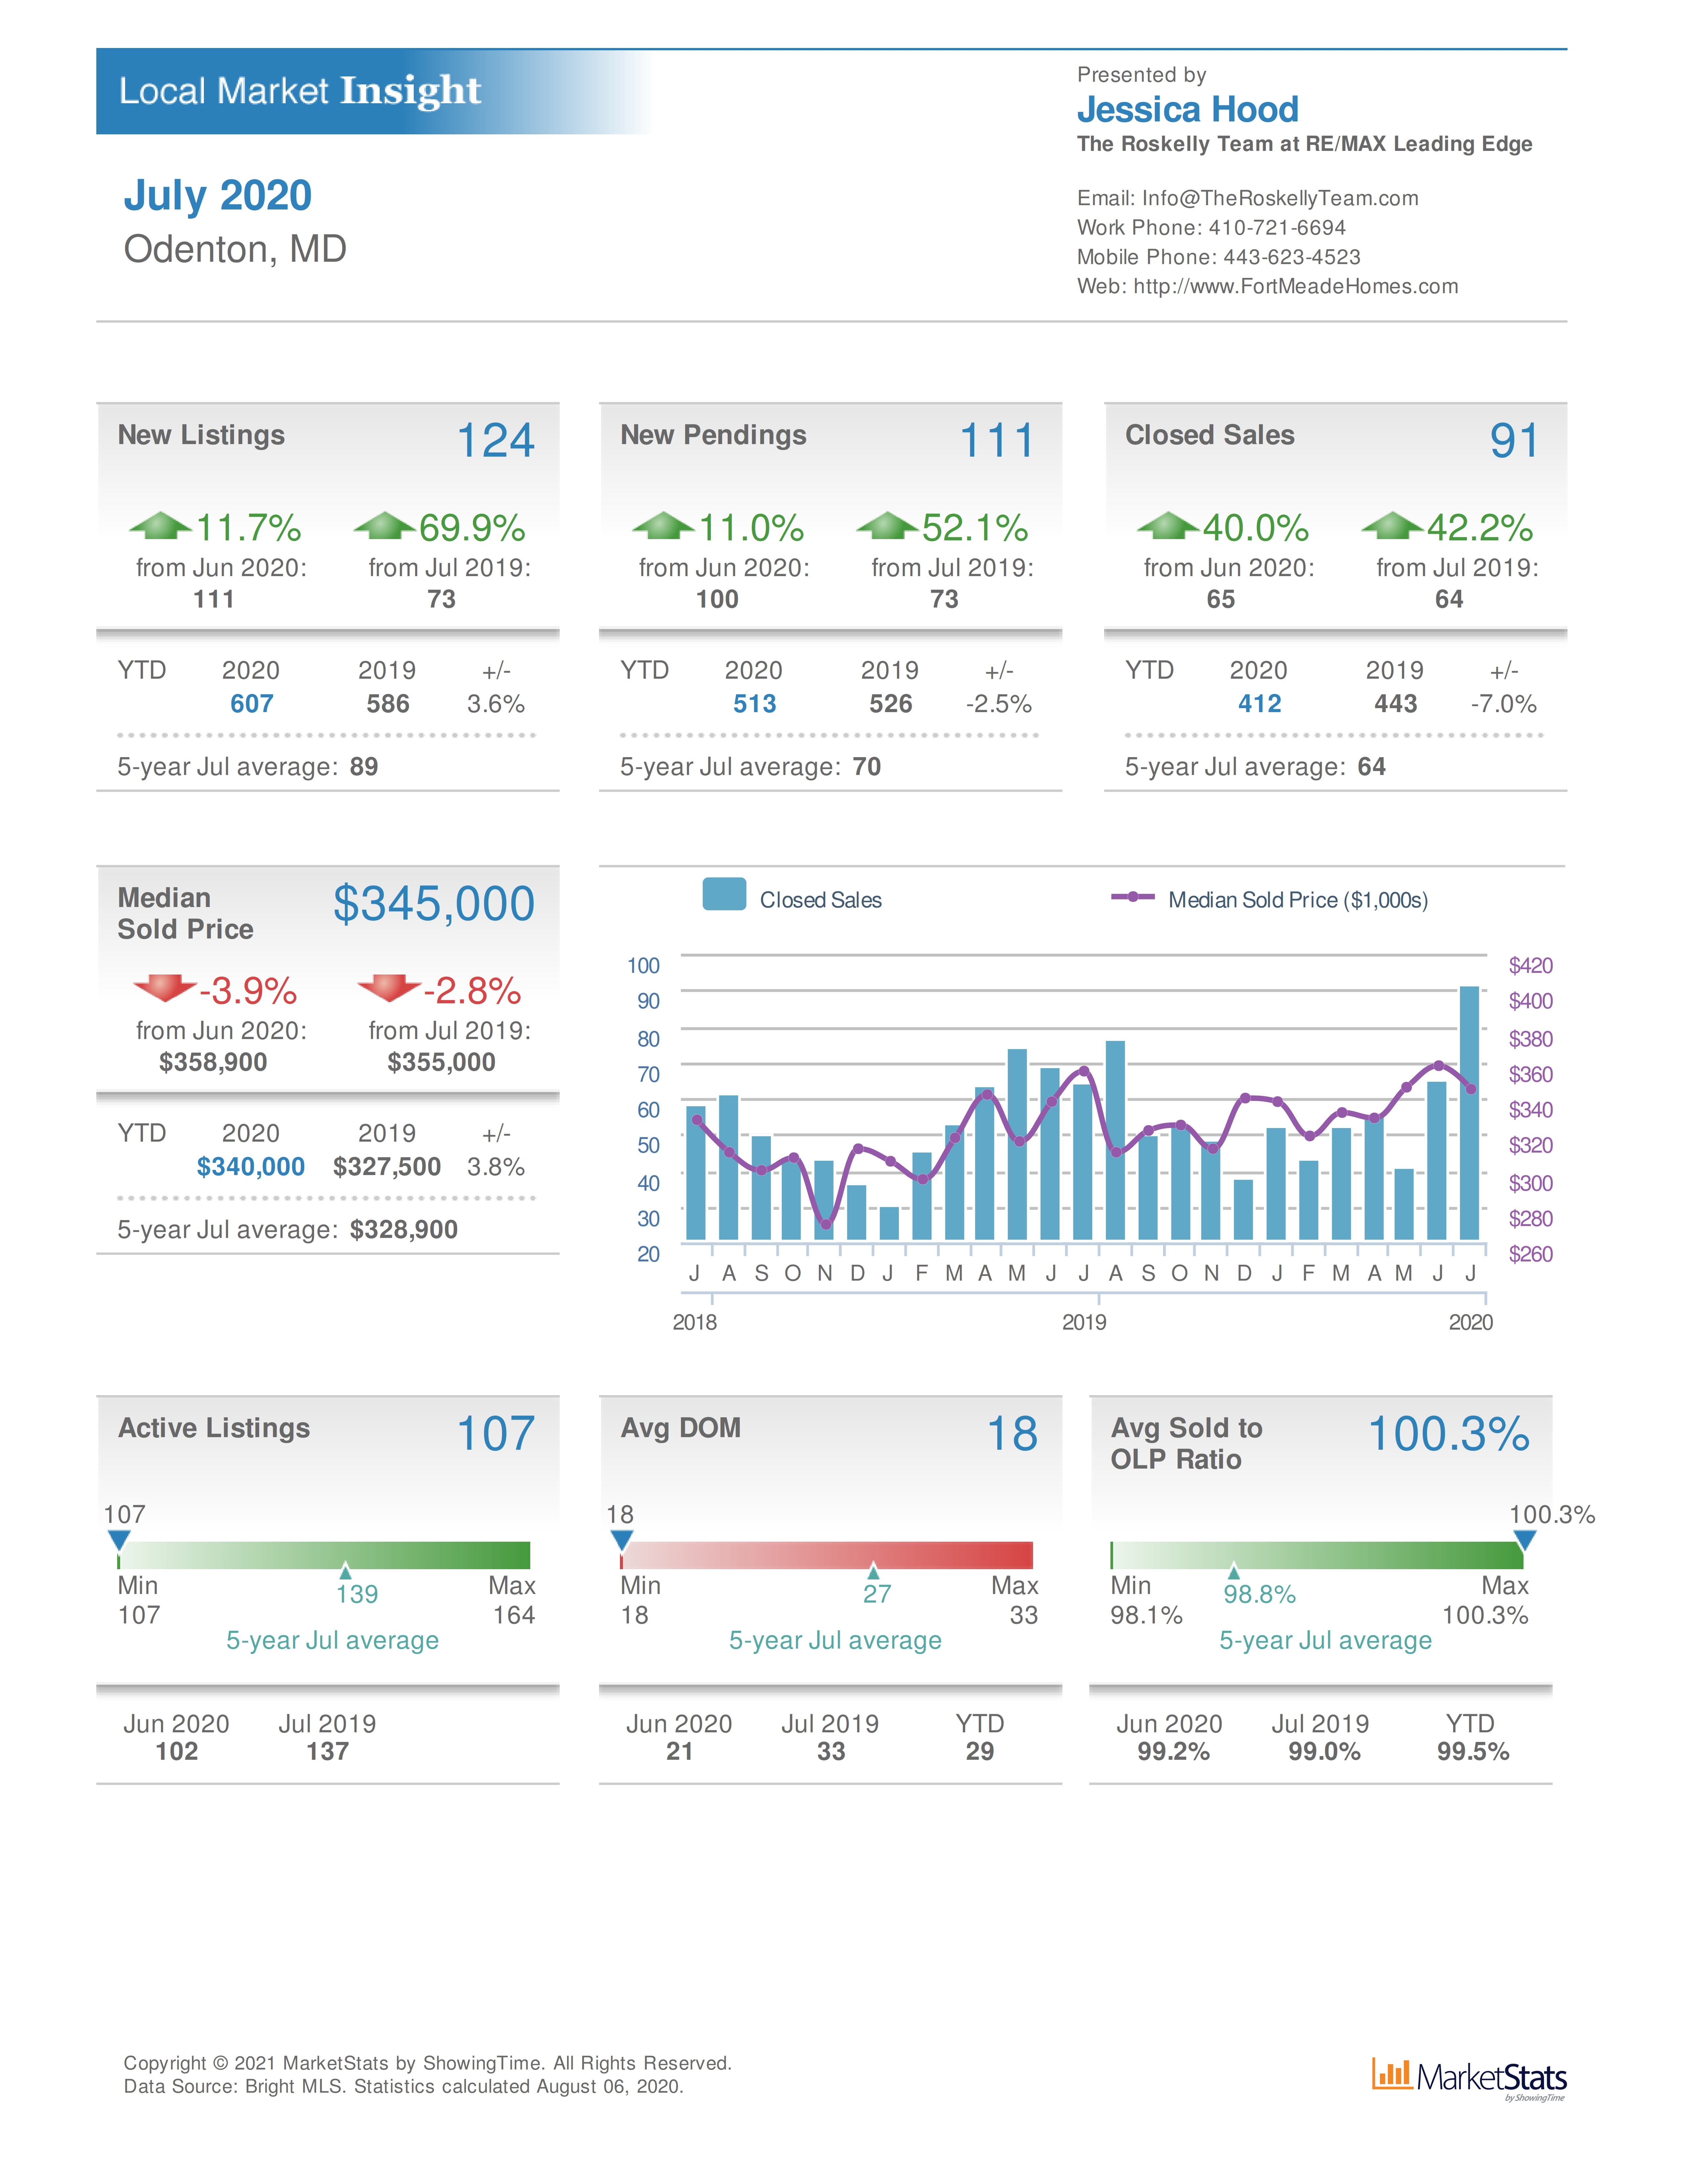 Odenton MD home sales and real estate values July 2020